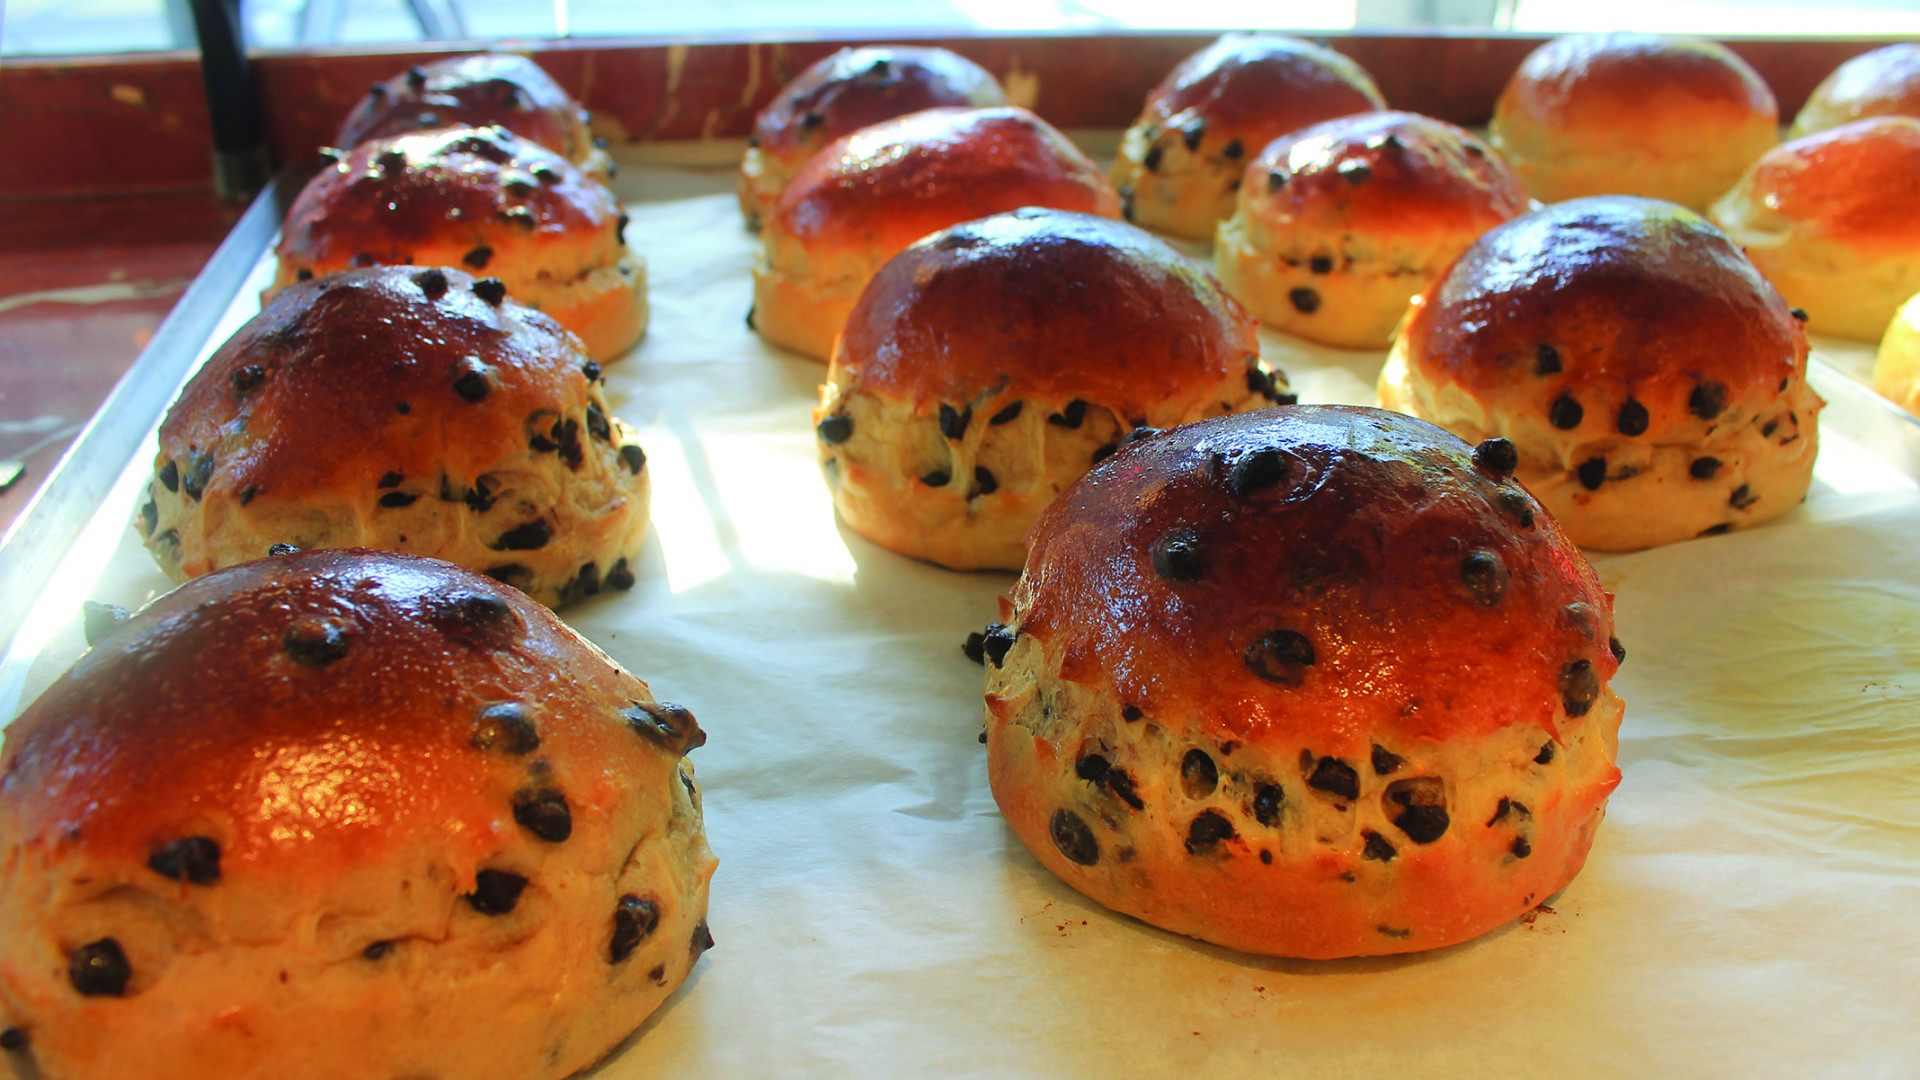 Toronto's French Bakery Marvelous by Fred | Fresh baked chocolate chip brioche